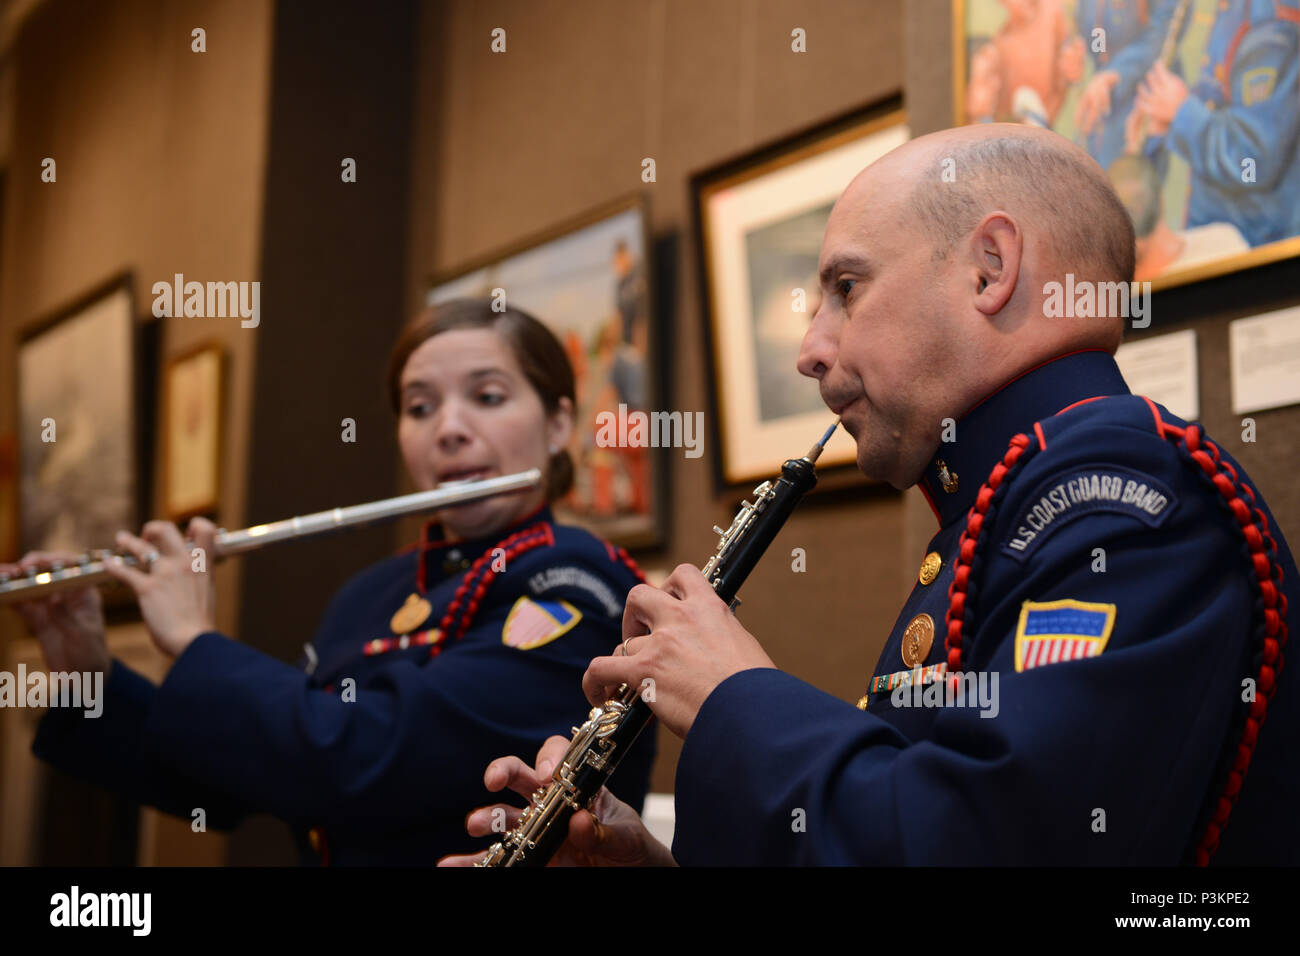 NEW YORK – Chief Petty Officer Barrett Seals and Petty Officer 1st Class Laurie Baynard, musicians in the Coast Guard Band play during the Coast Guard Art Program (COGAP) in New York City, July 5, 2016. The COGAP collection consists of nearly 2,000 pieces of works, which are primarily paintings. (Photo by Petty Officer 3rd Class Steve Strohmaier) Stock Photo